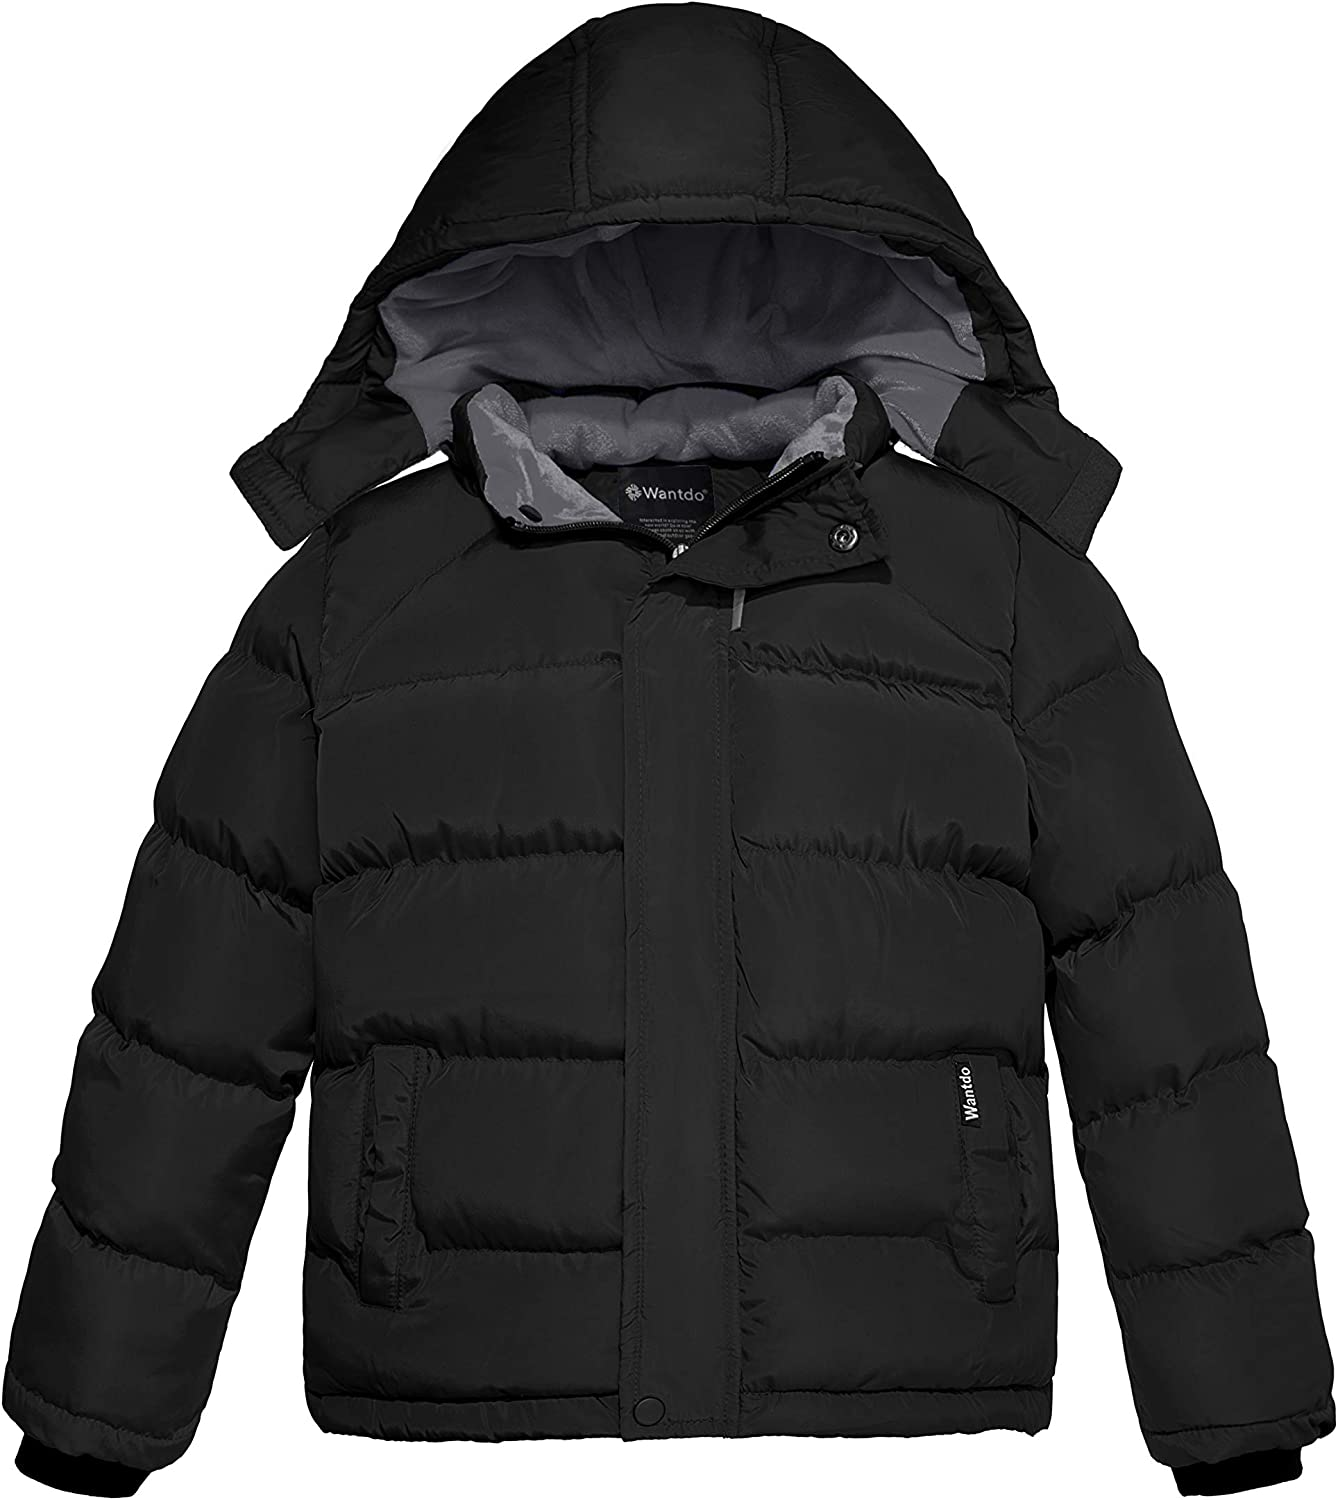 Wantdo Boy's Padded Winter Coat Thicken Warm Jacket with Detachable Hood